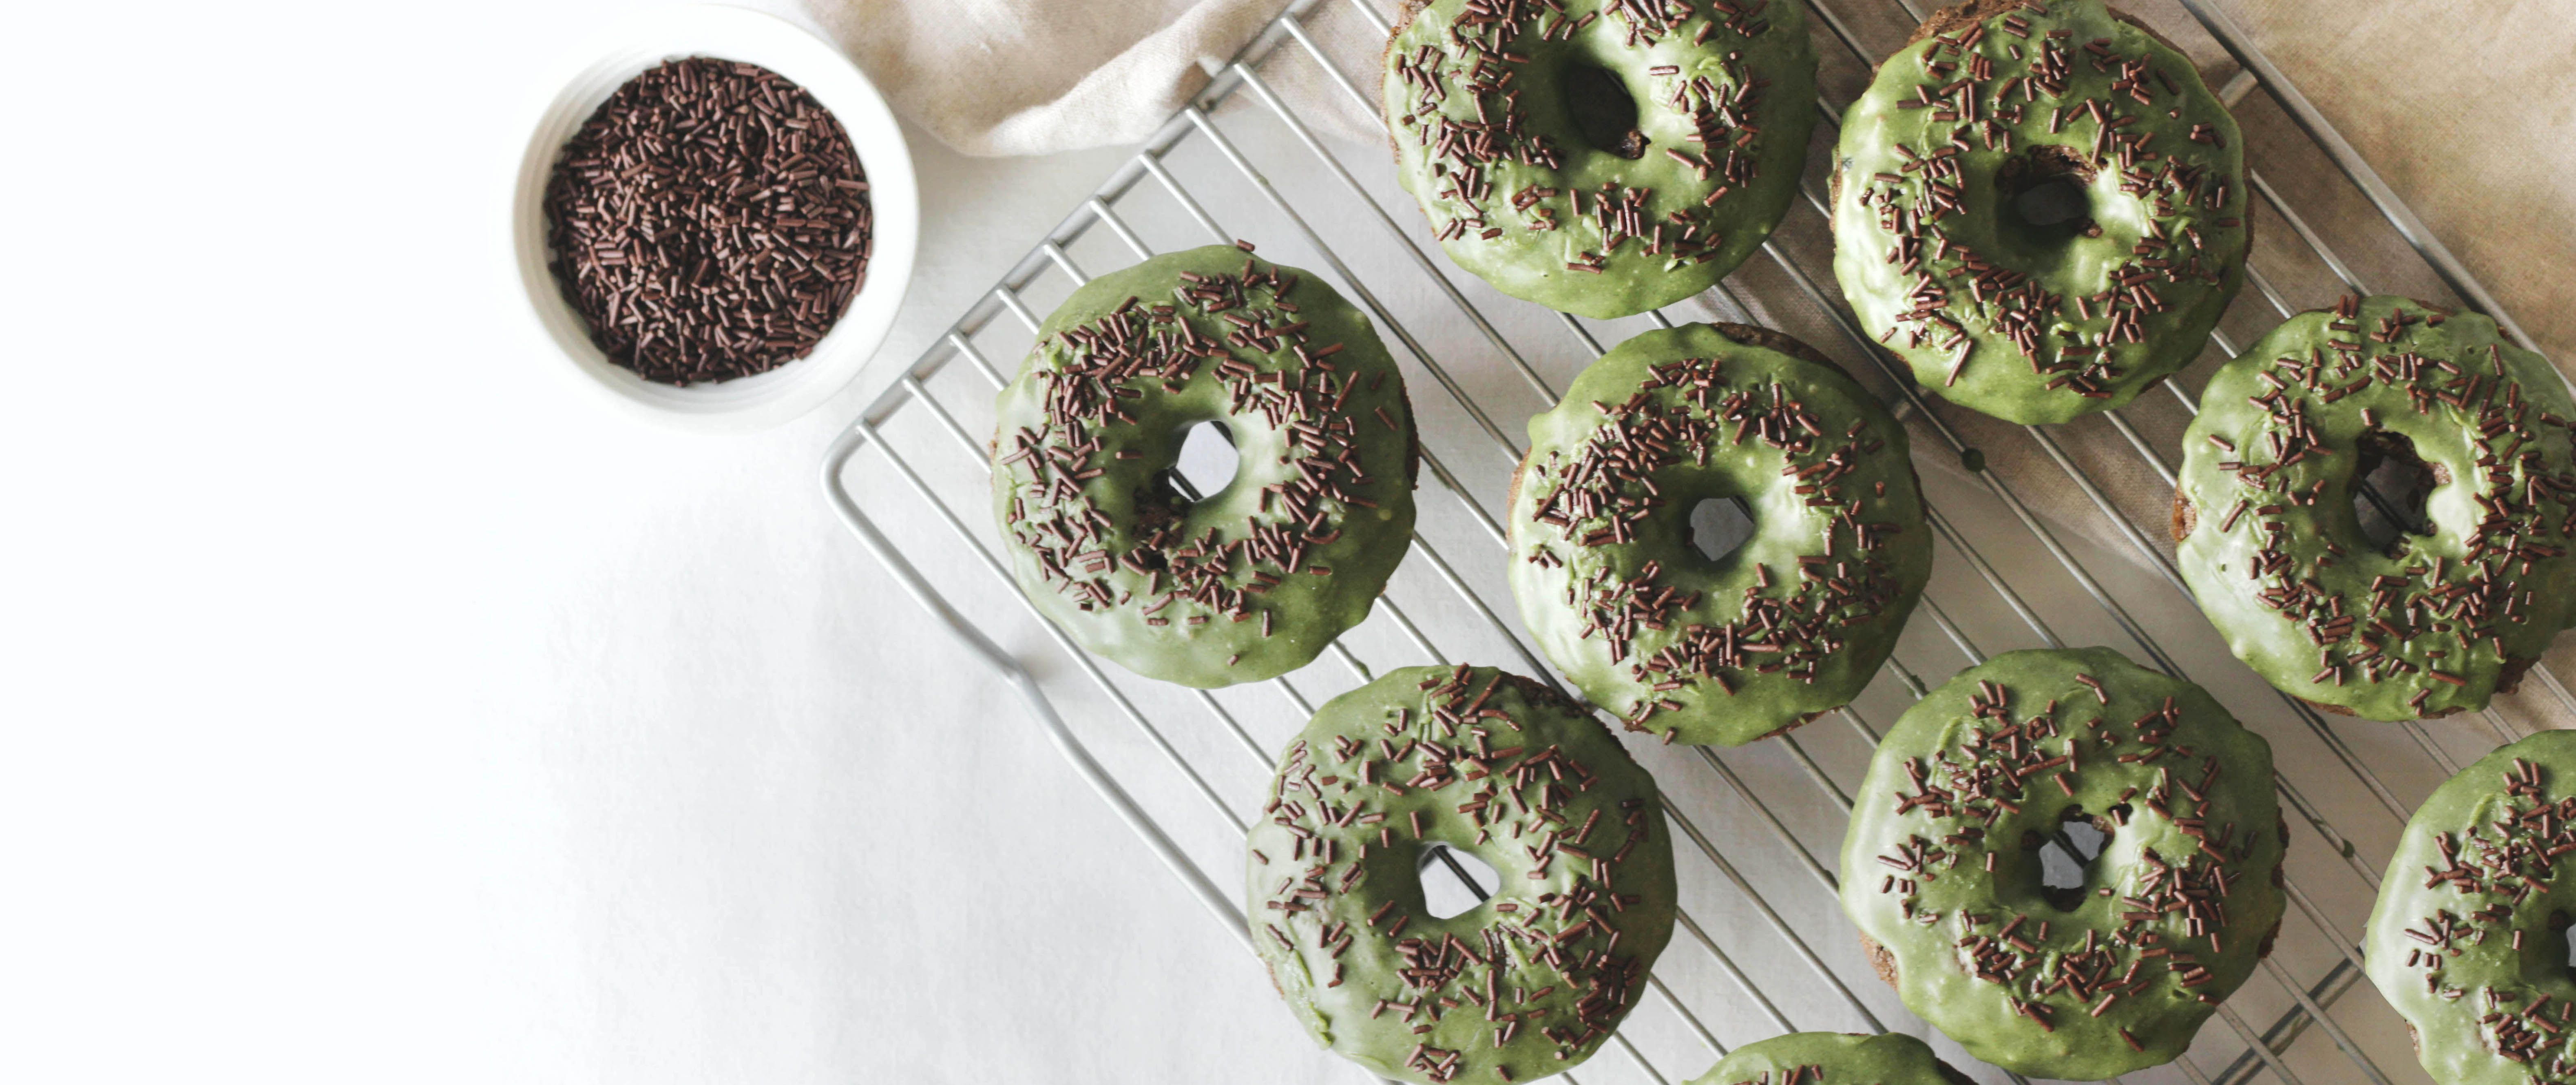 Baked chocolate donuts are a healthy and easy-to-make treat for cold winter days.